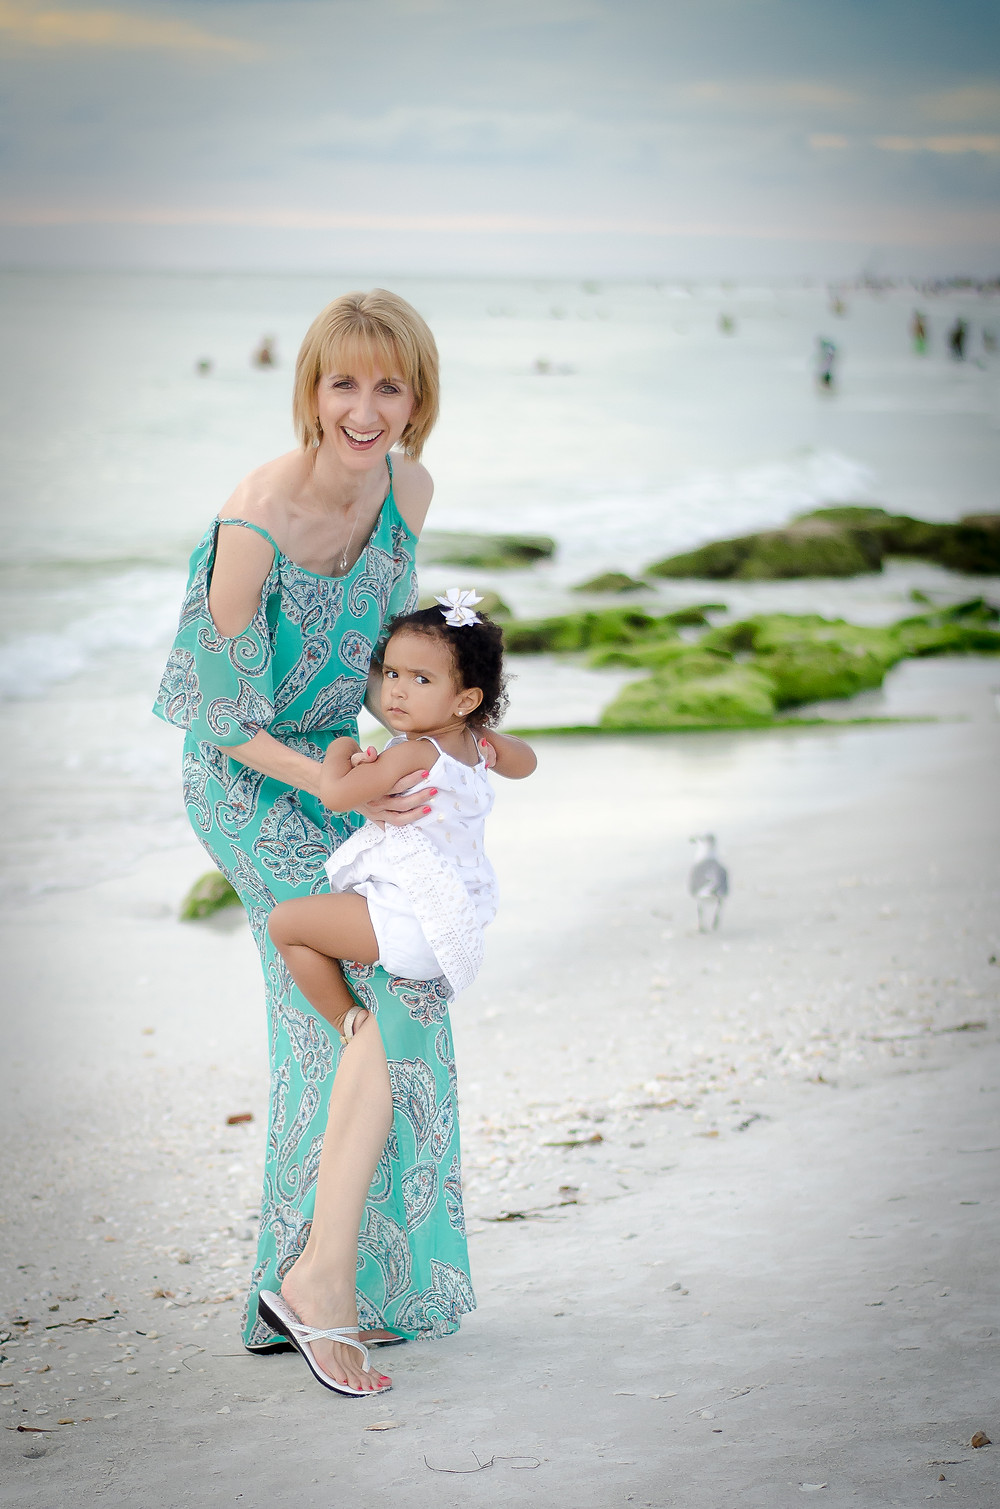 Madysen was not letting go of her mom for her photo session on the beach